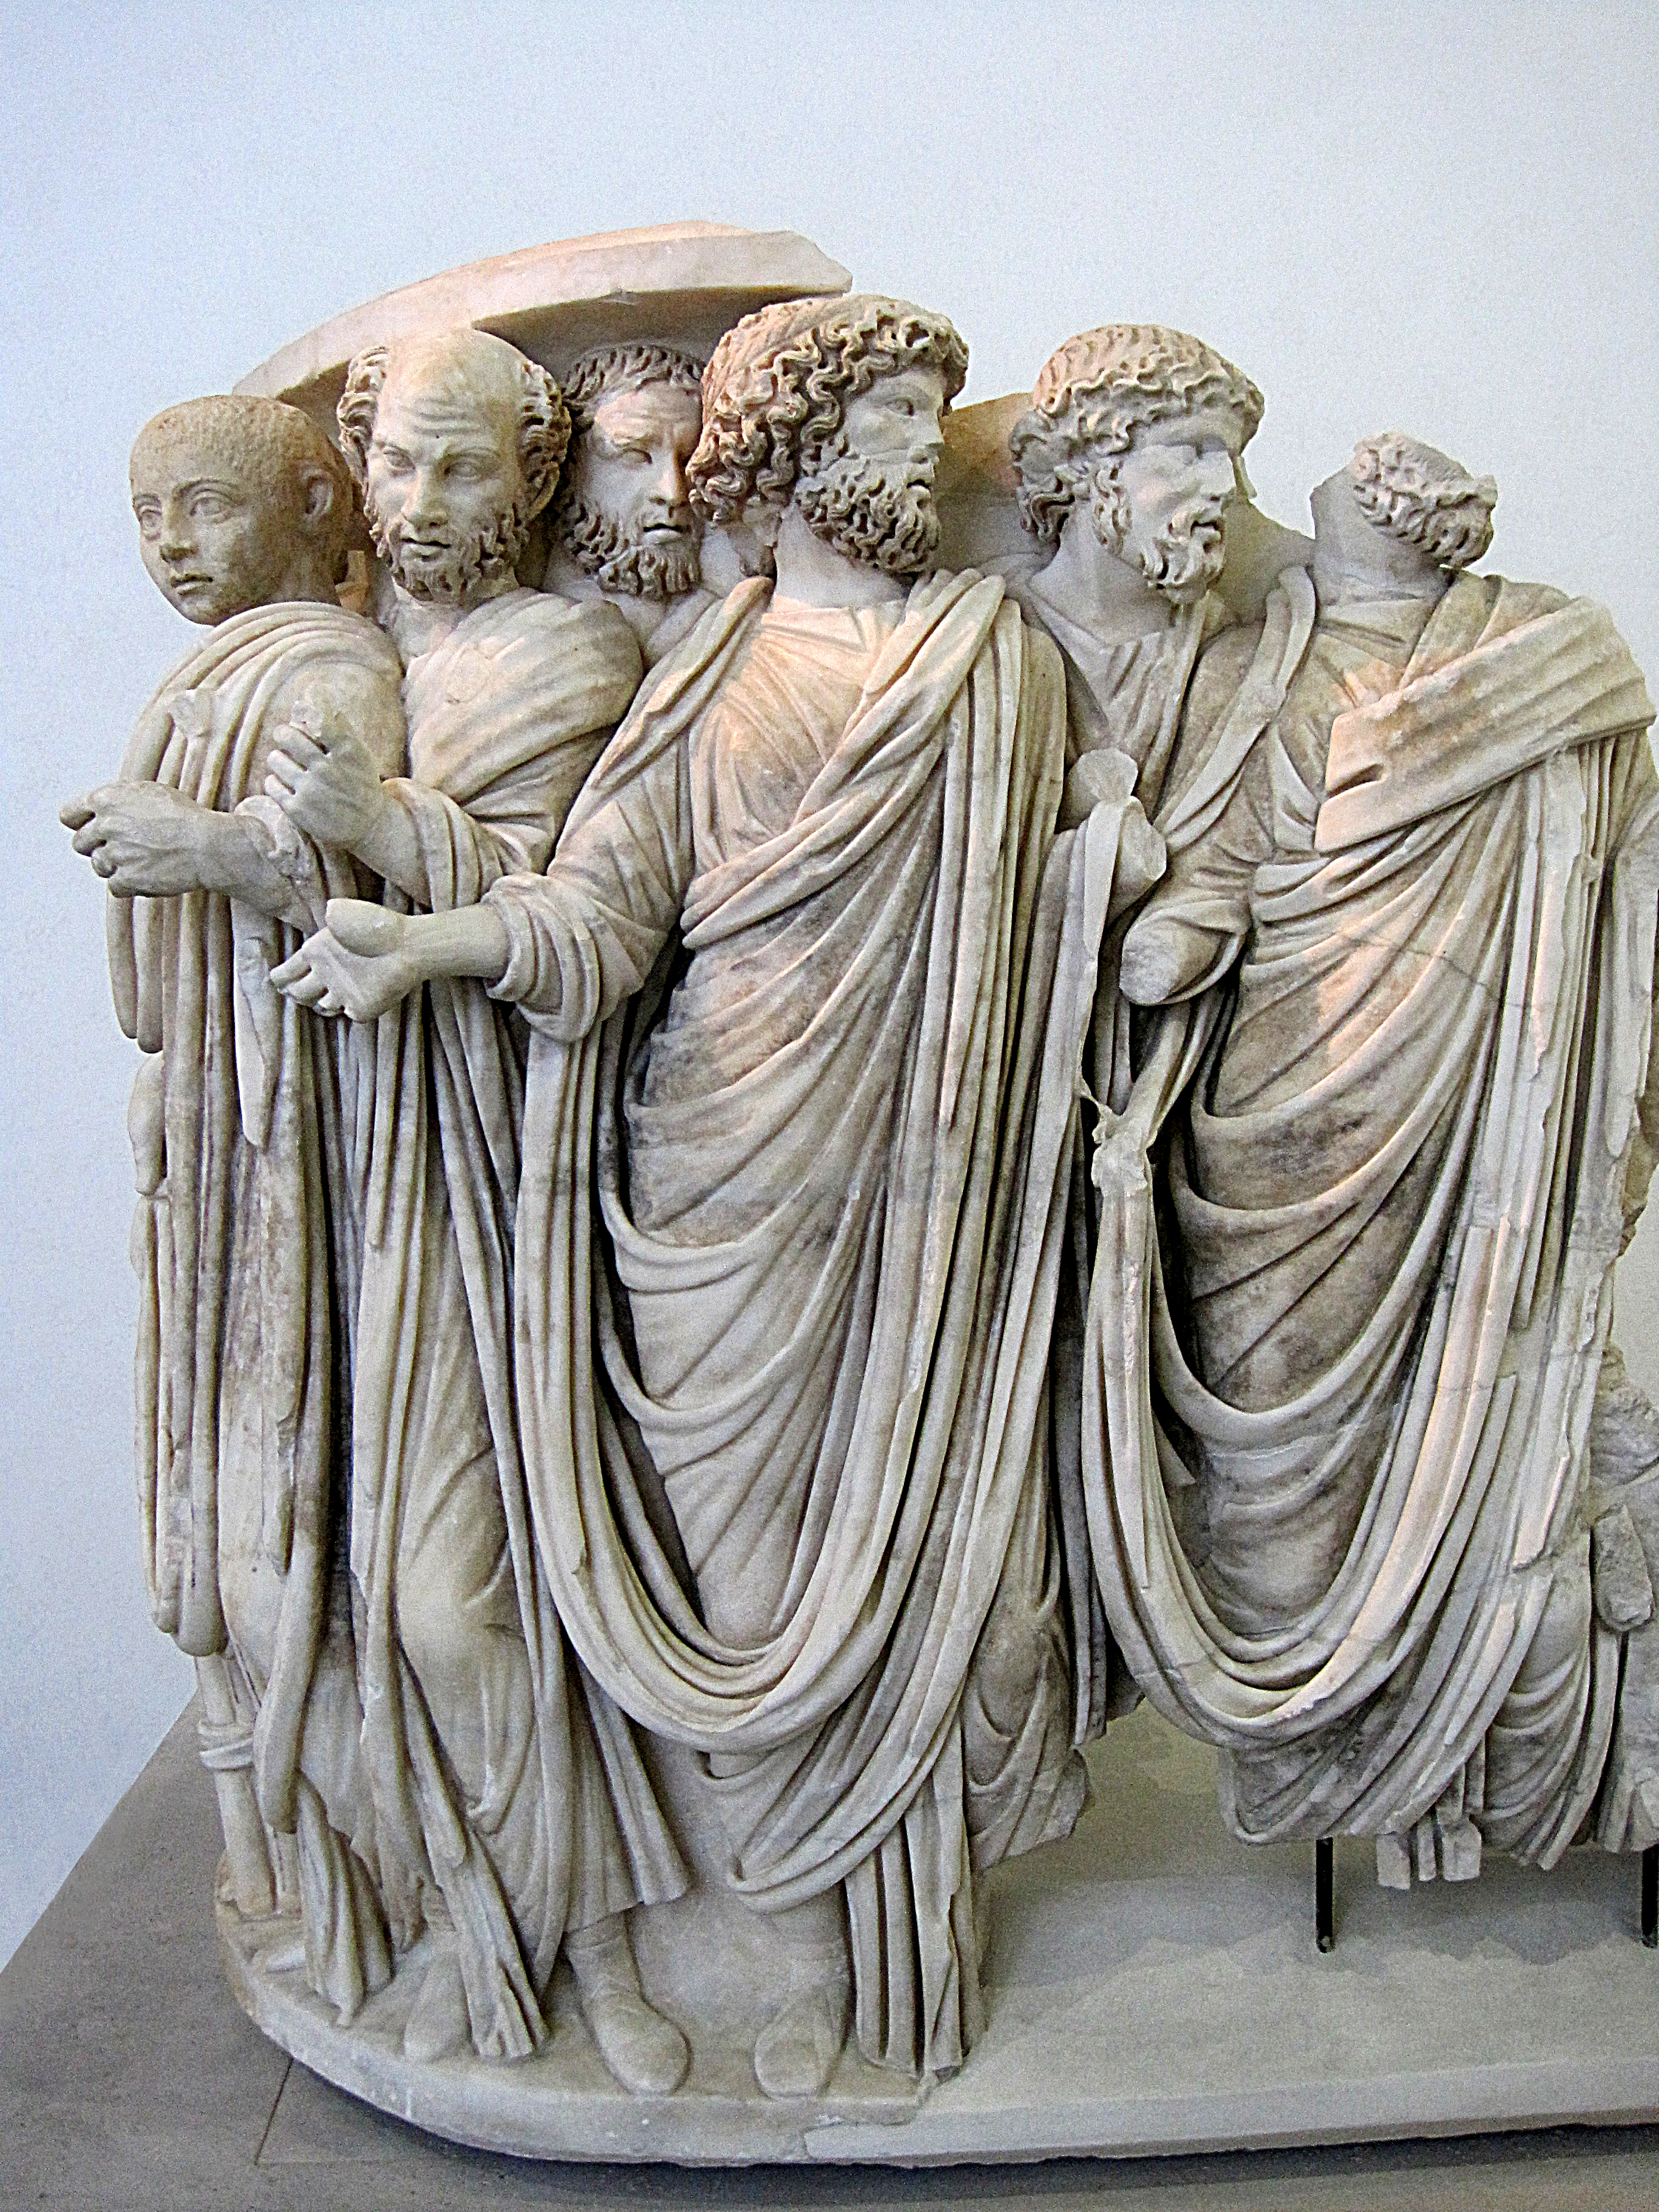 Marble fragment of the sarcophagus depicting Acilia Gordian III and some members of the Roman Senate.